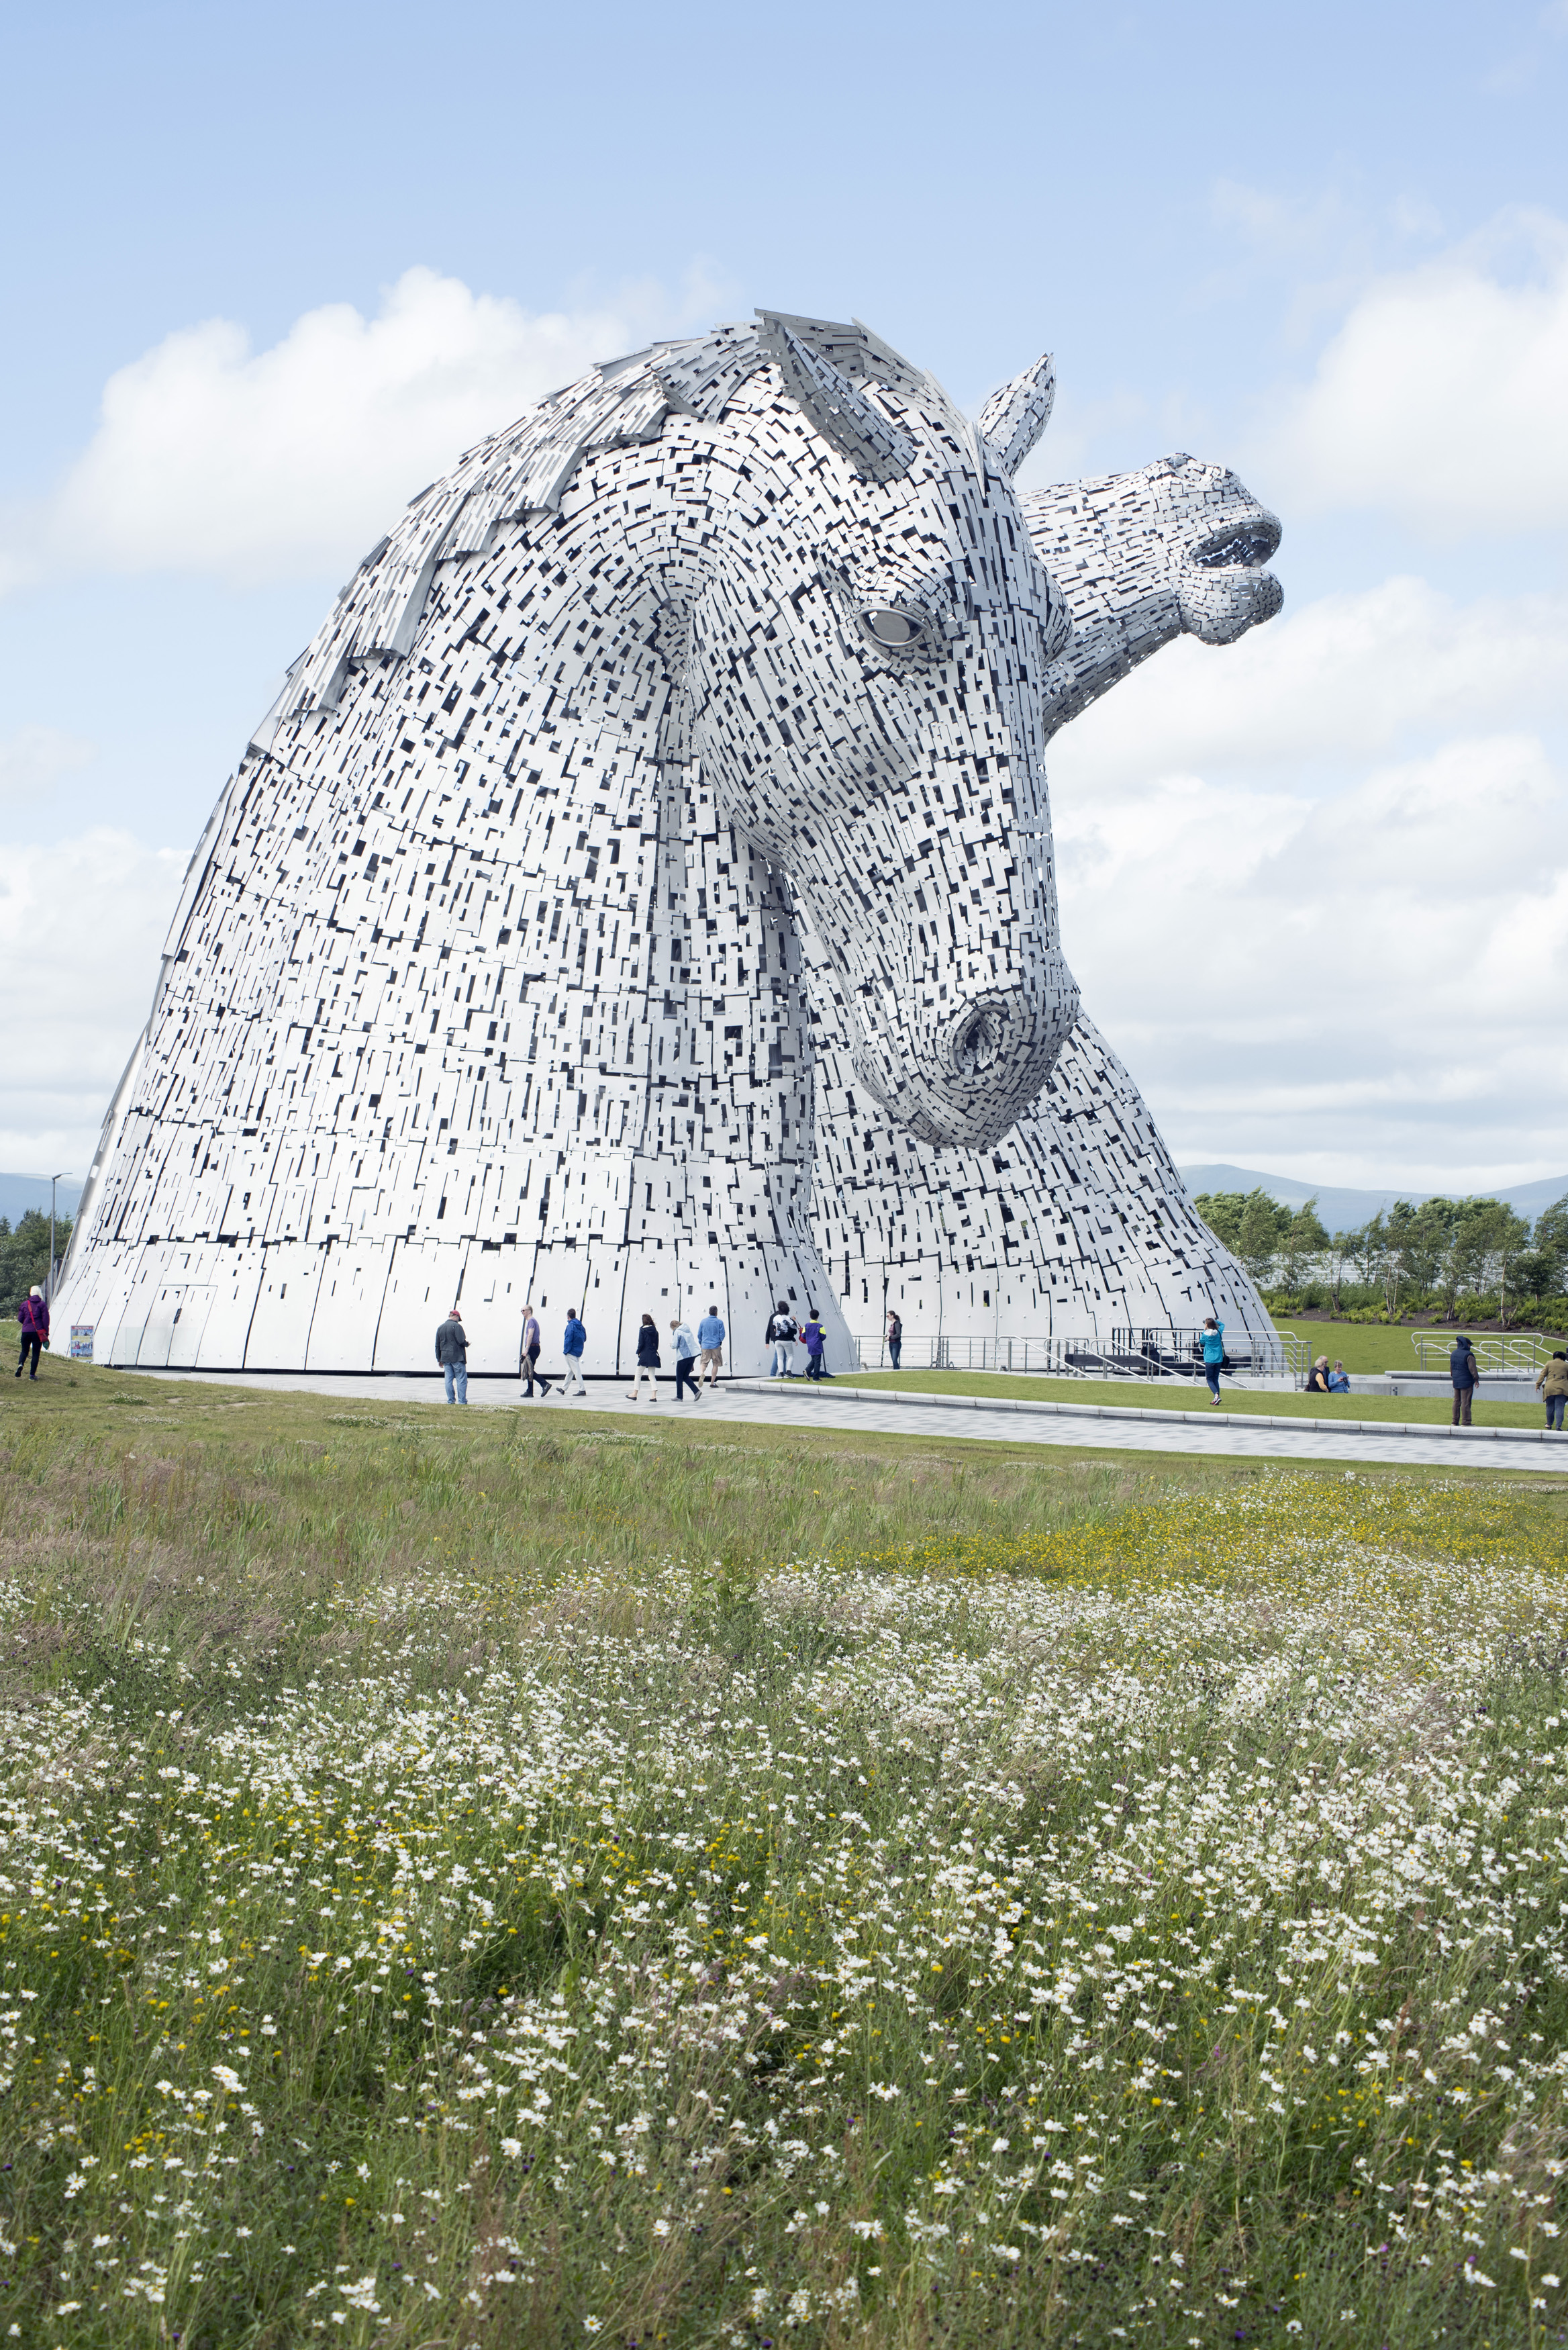 Kelpies horse monuments surrounded by scattered clouds in grassy field at Falkirk, Scotland